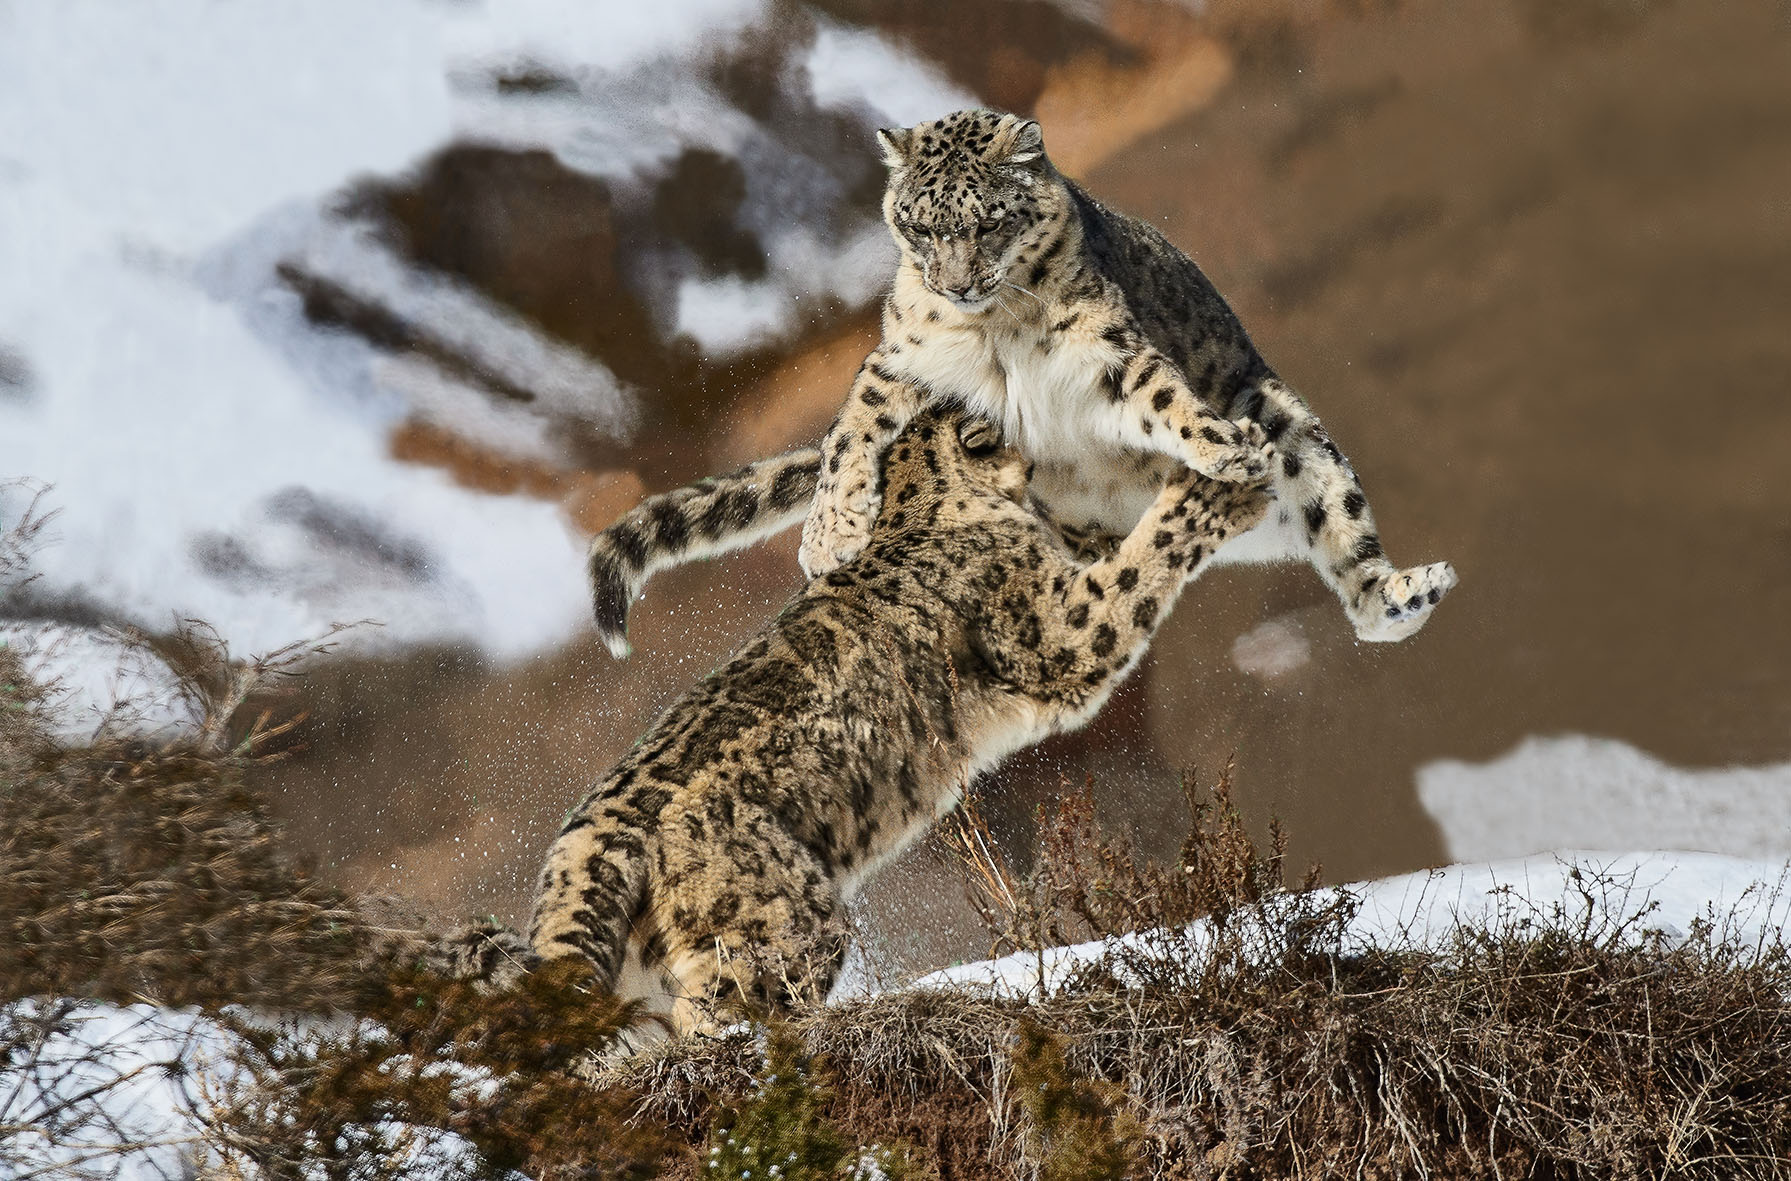 Info Shymkent - Snow Leopard fight in Kazakhstan captured by